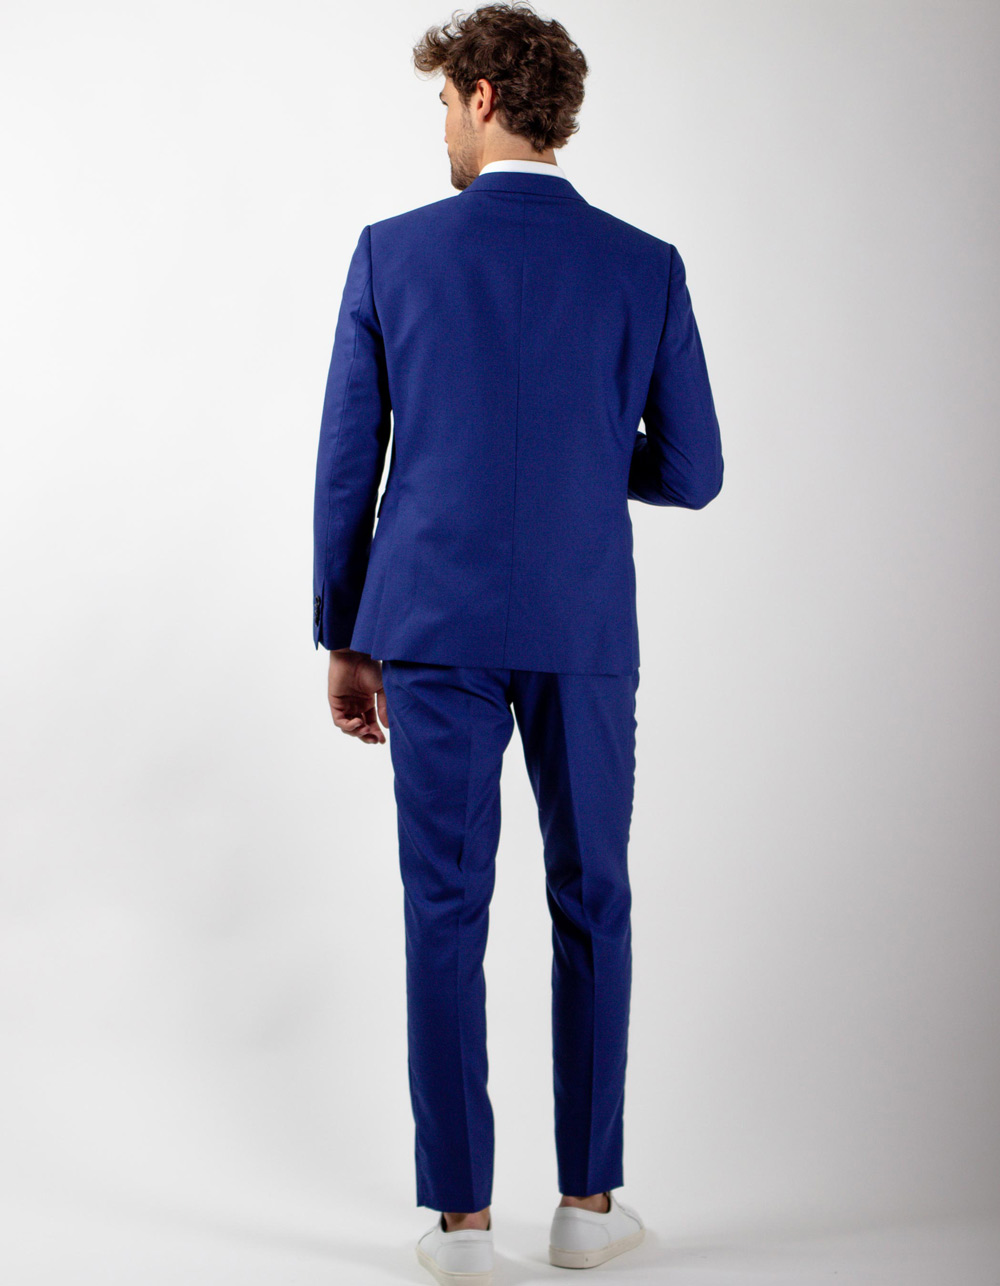 Blue fil a fil suit - Backside